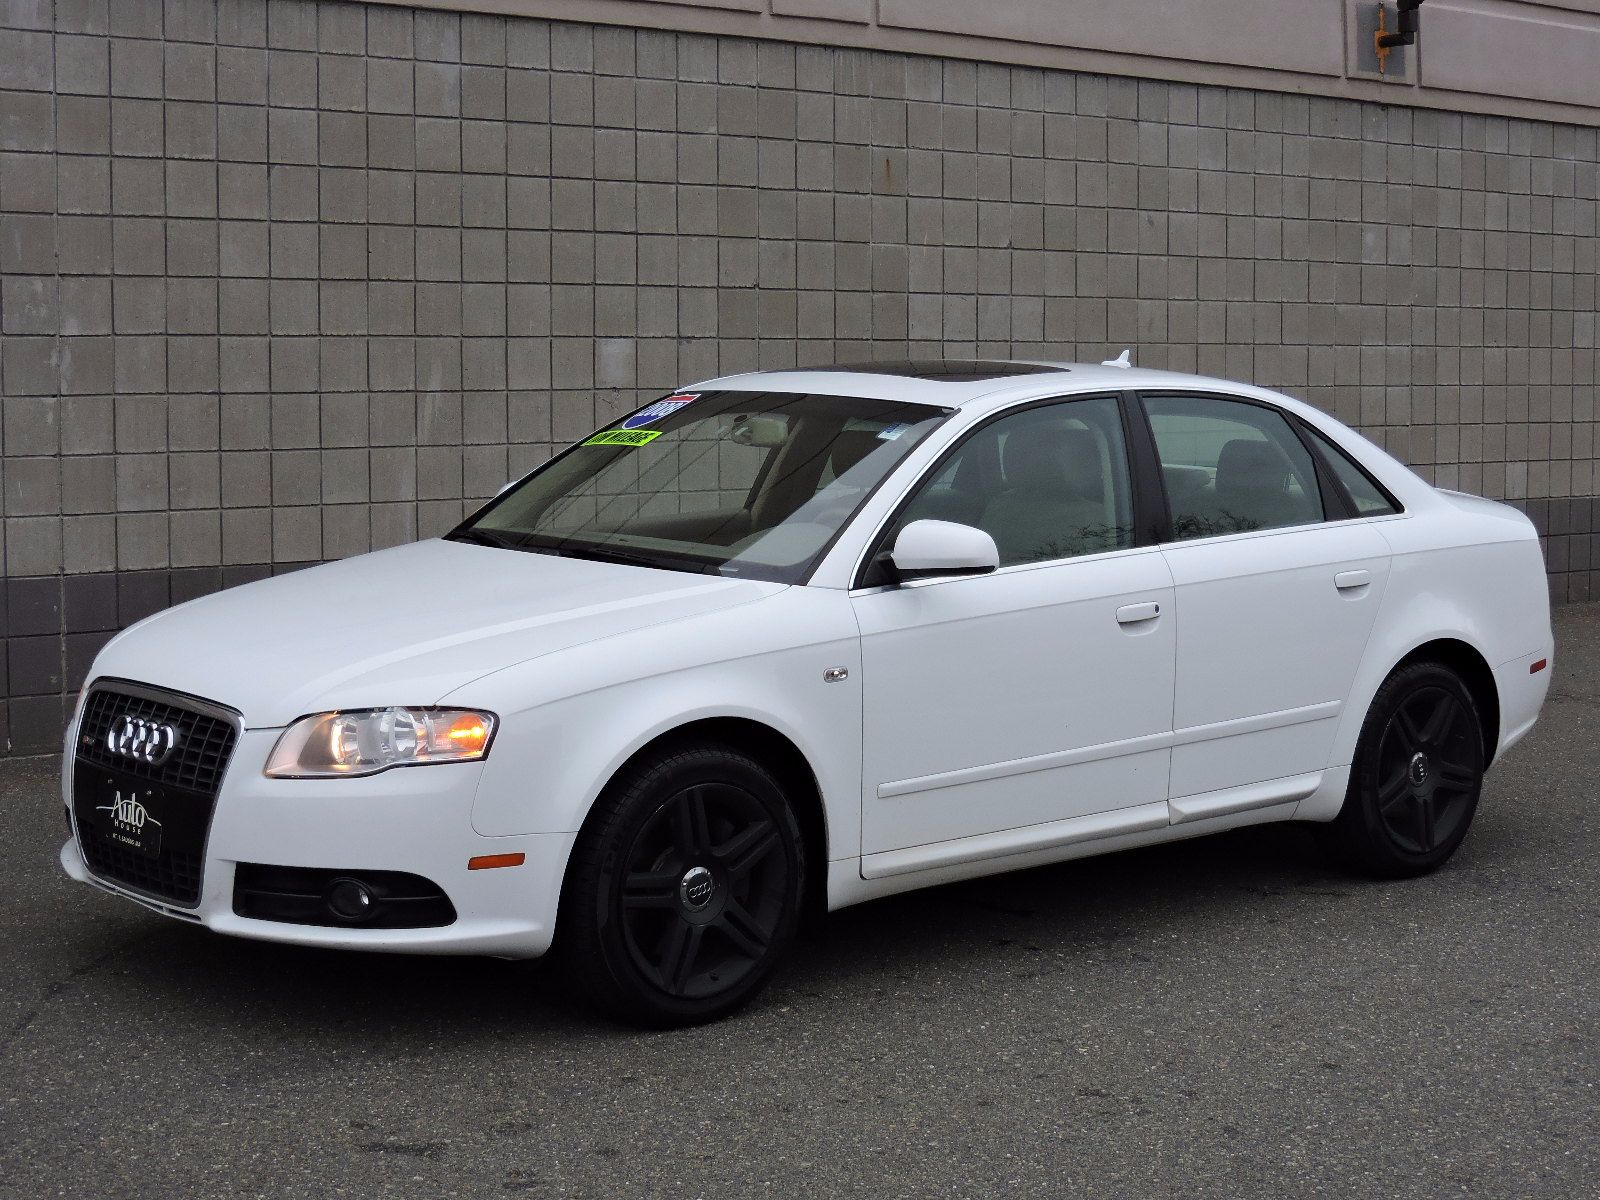 used 2008 audi a4 2.0t at auto house usa saugus